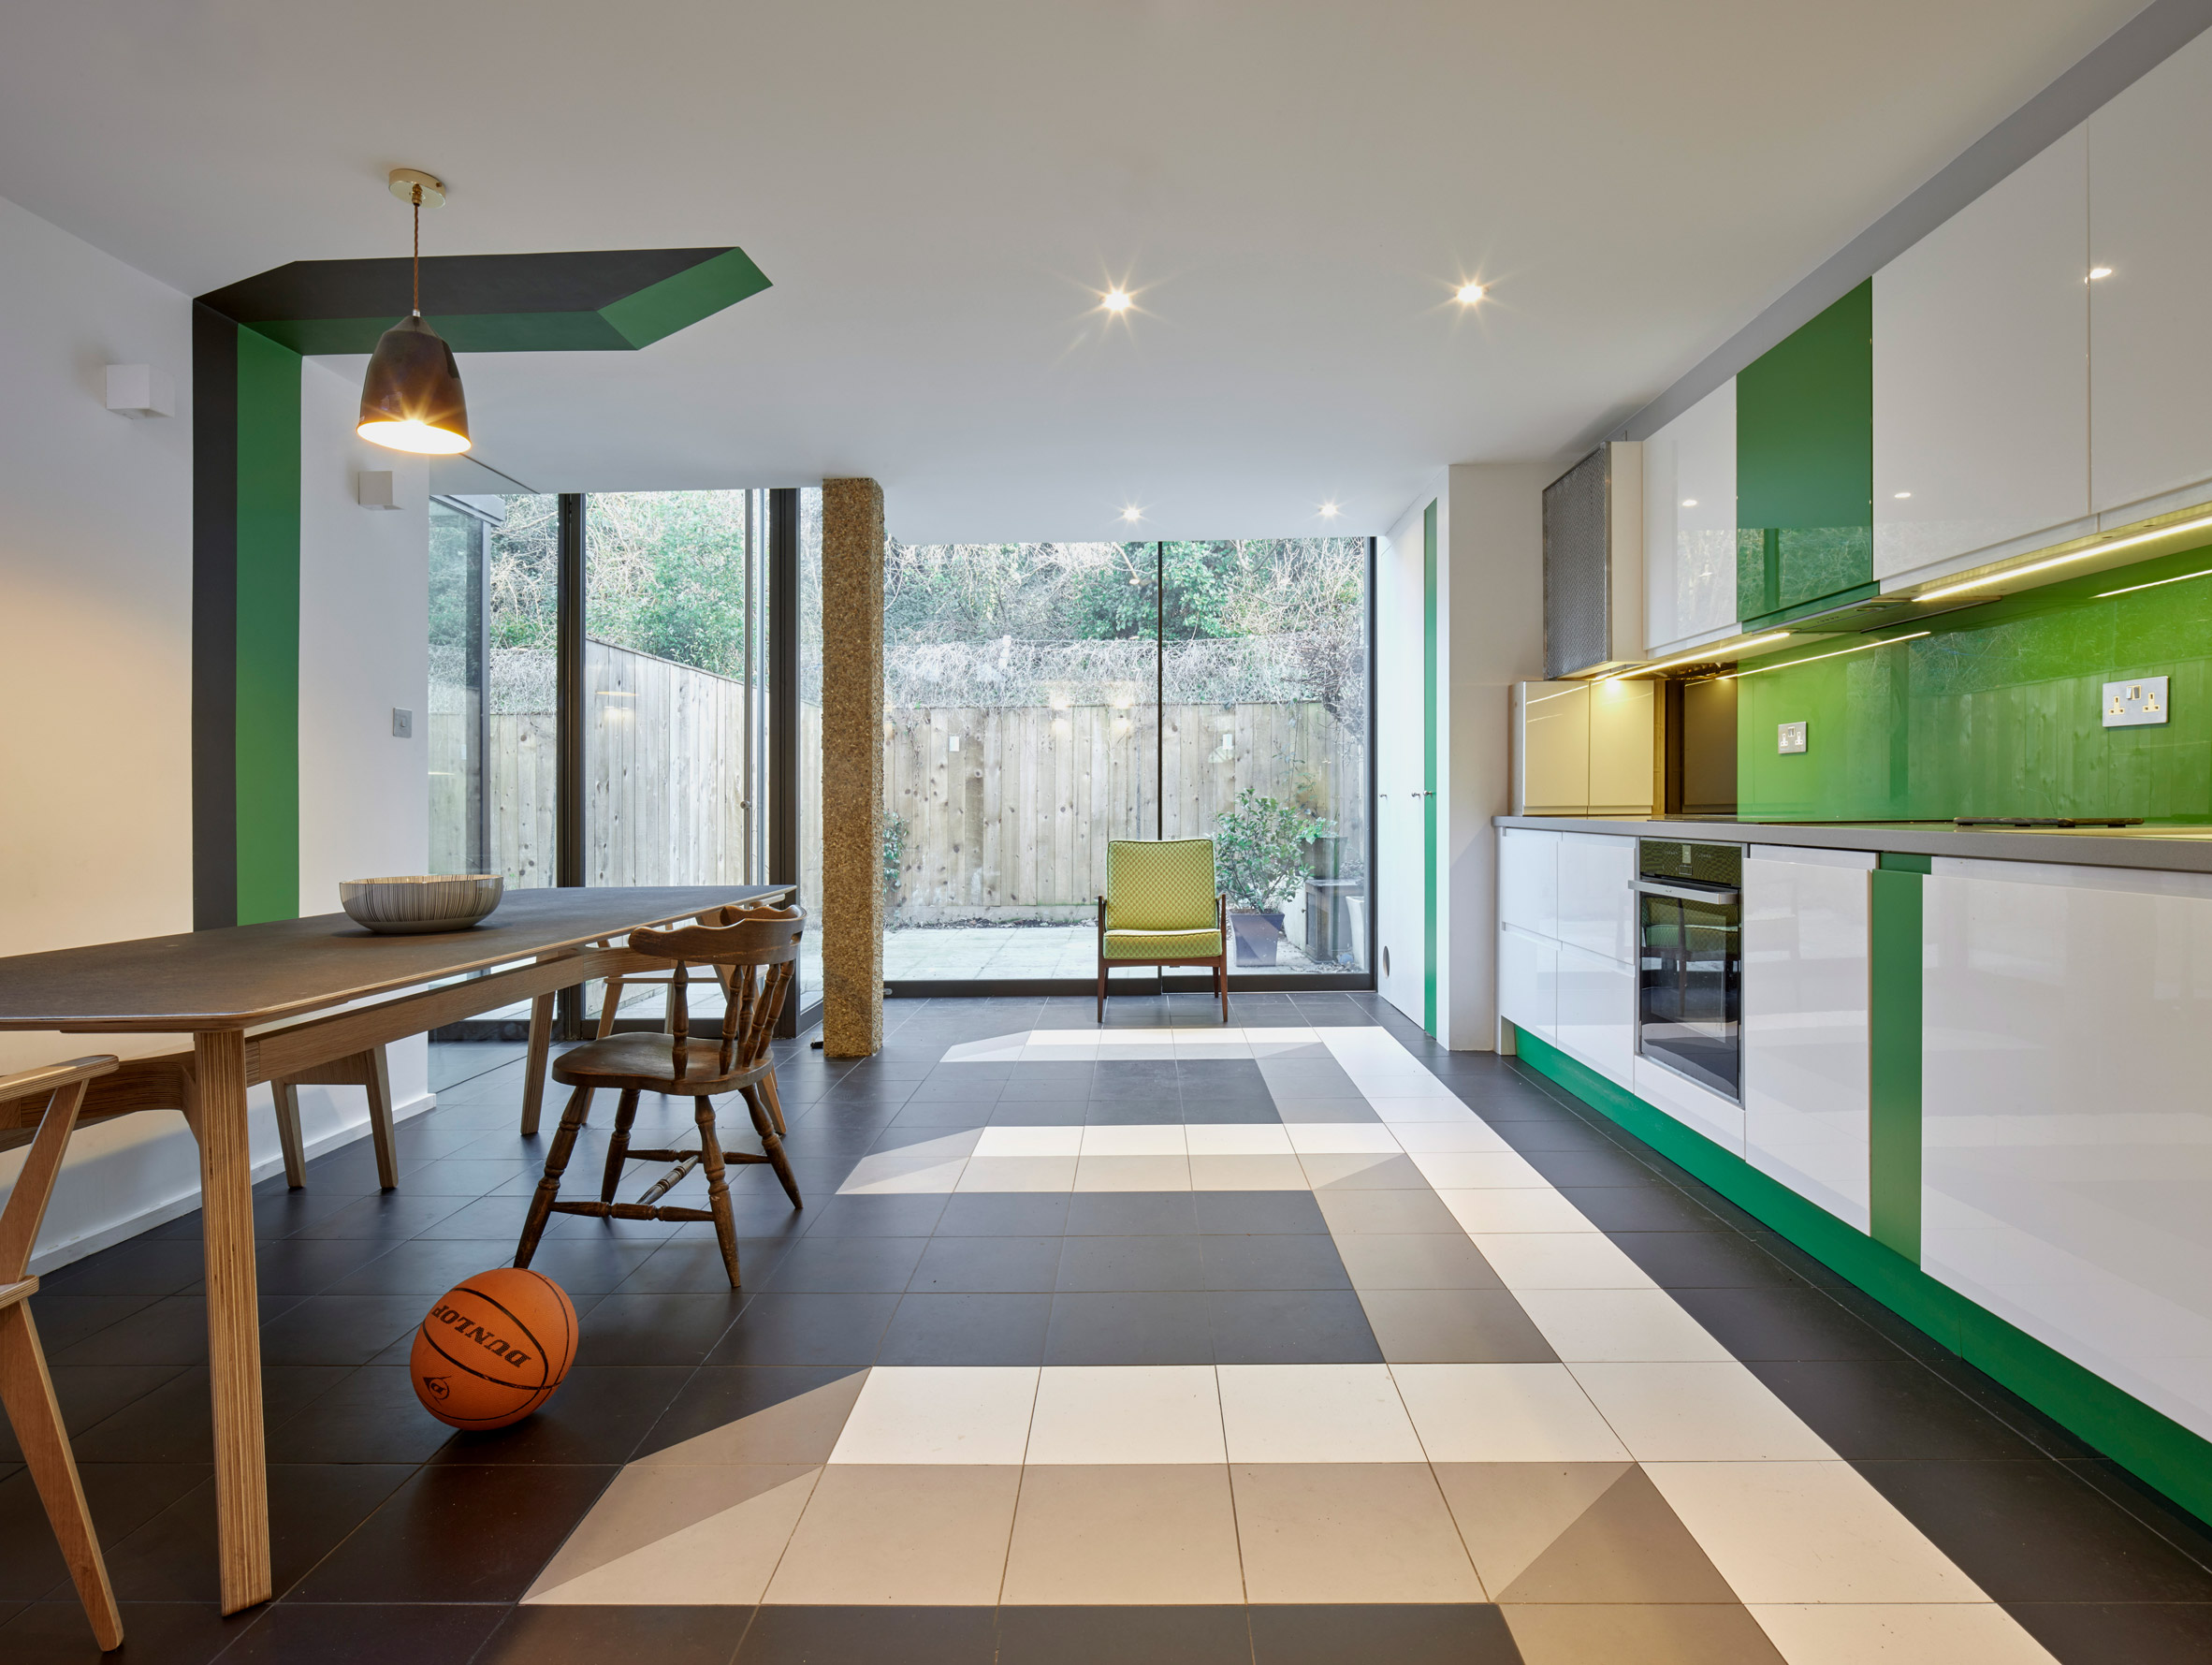 161 Norwood Road by Sean Griffiths